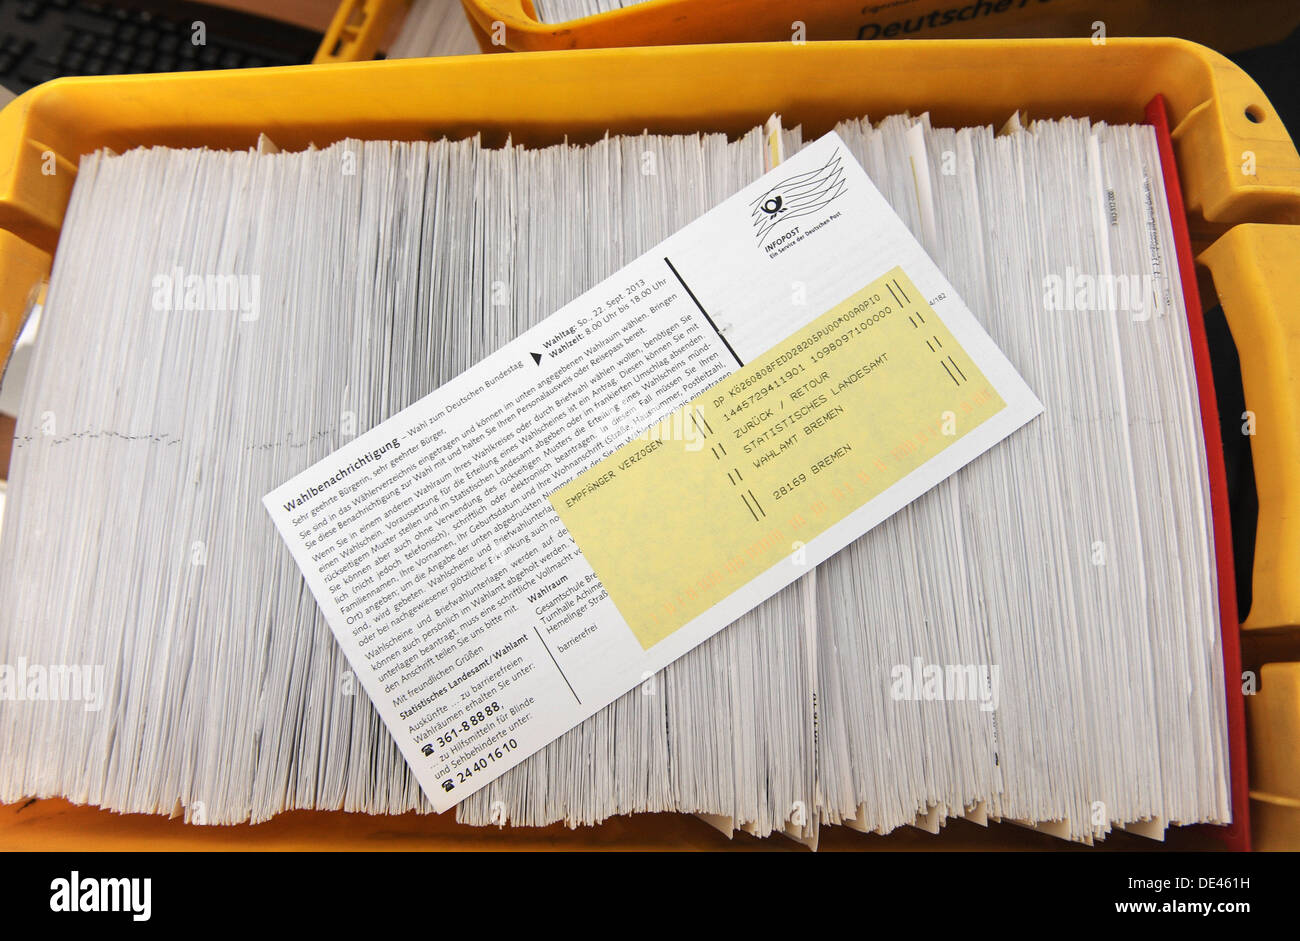 Bremen, Germany. 11th Sep, 2013. Boxes filled with undelivered polling cards are pictured at the State Statistical Office Bremen in Bremen, Germany, 11 September 2013. Thousands of polling cards could not be delivered by the German mailservice. Photo: INGO WAGNER/dpa/Alamy Live News - Stock Image